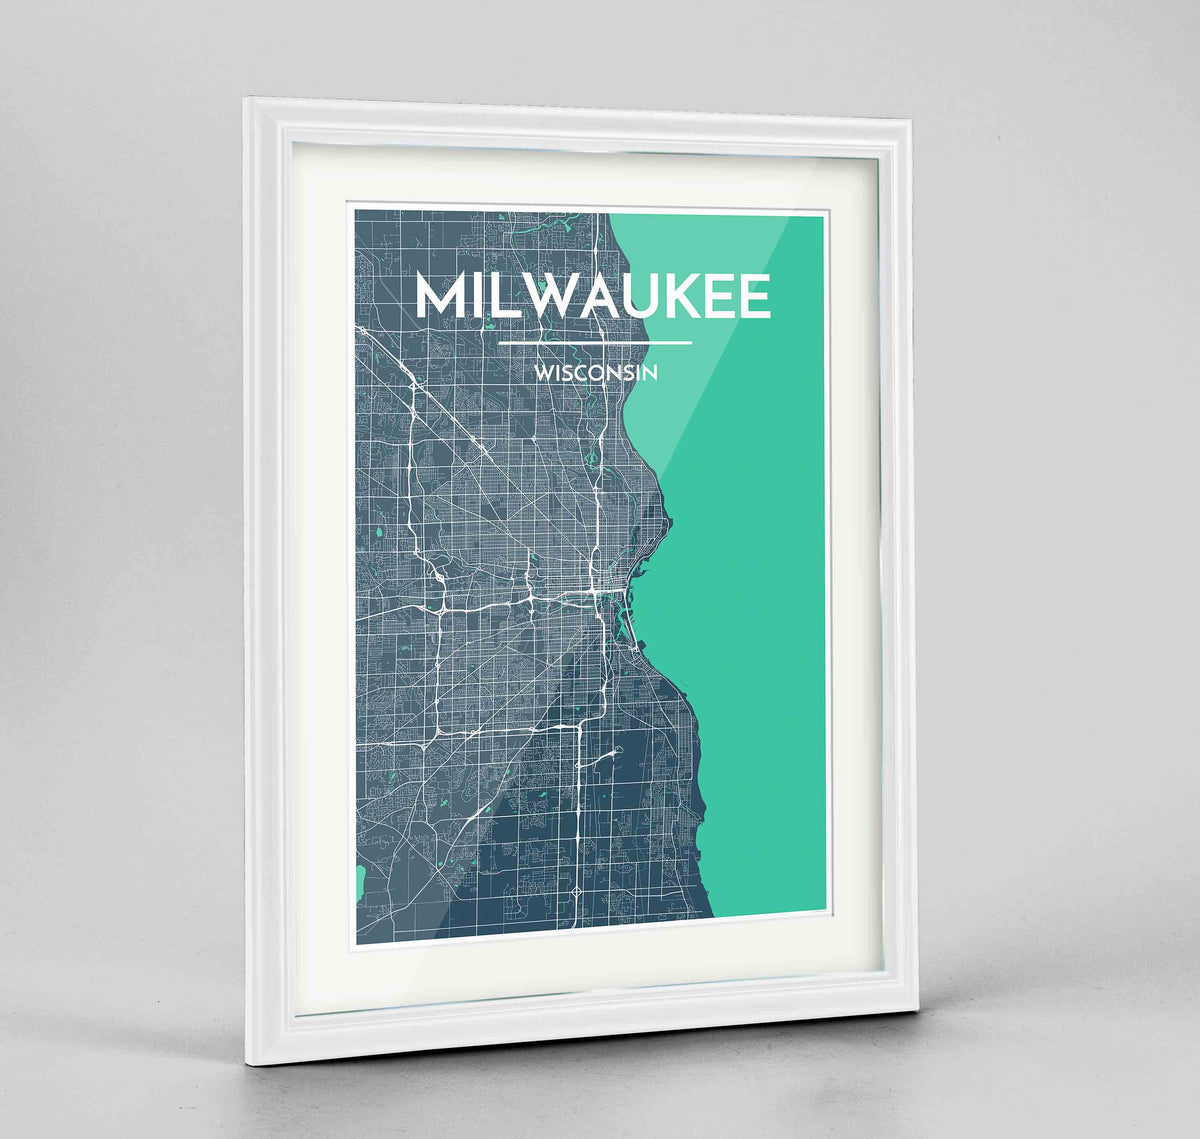 "Framed Milwaukee City Map 24x36"" Traditional White frame Point Two Design Group"